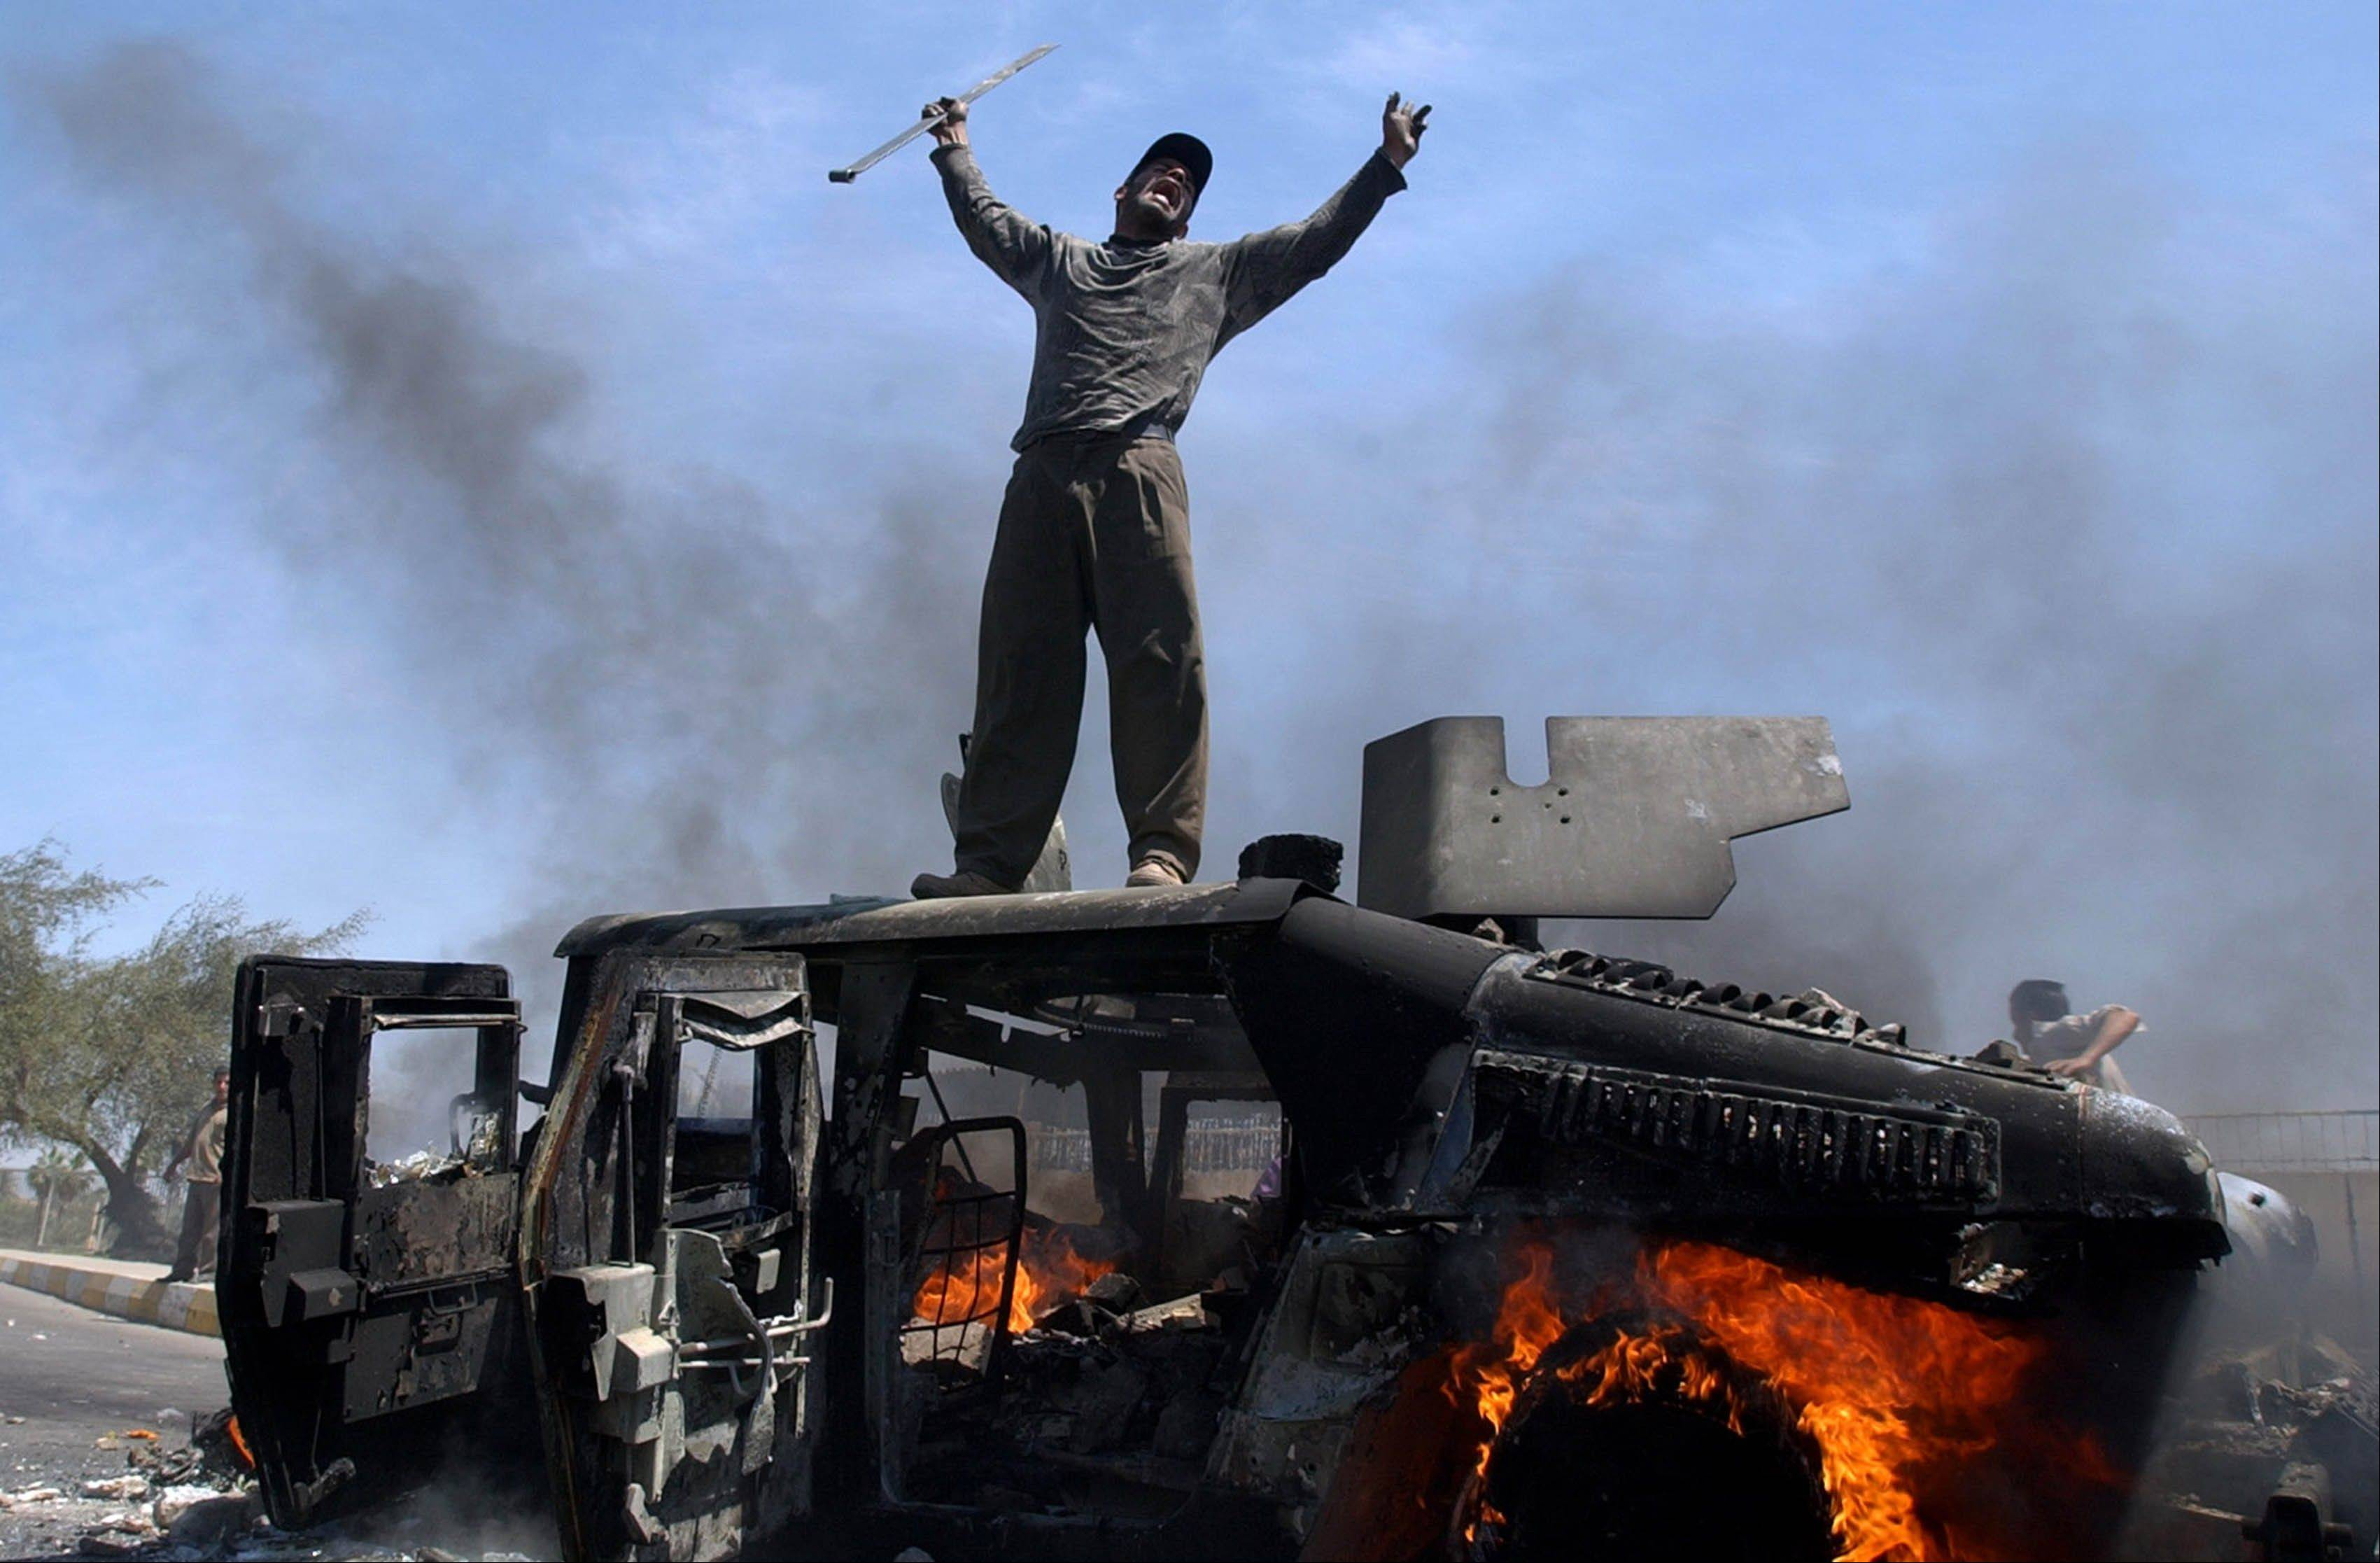 FILE - An Iraqi man celebrates on top of a burning U.S. Army Humvee in the northern part of Baghdad, Iraq on Monday, April 26, 2004.